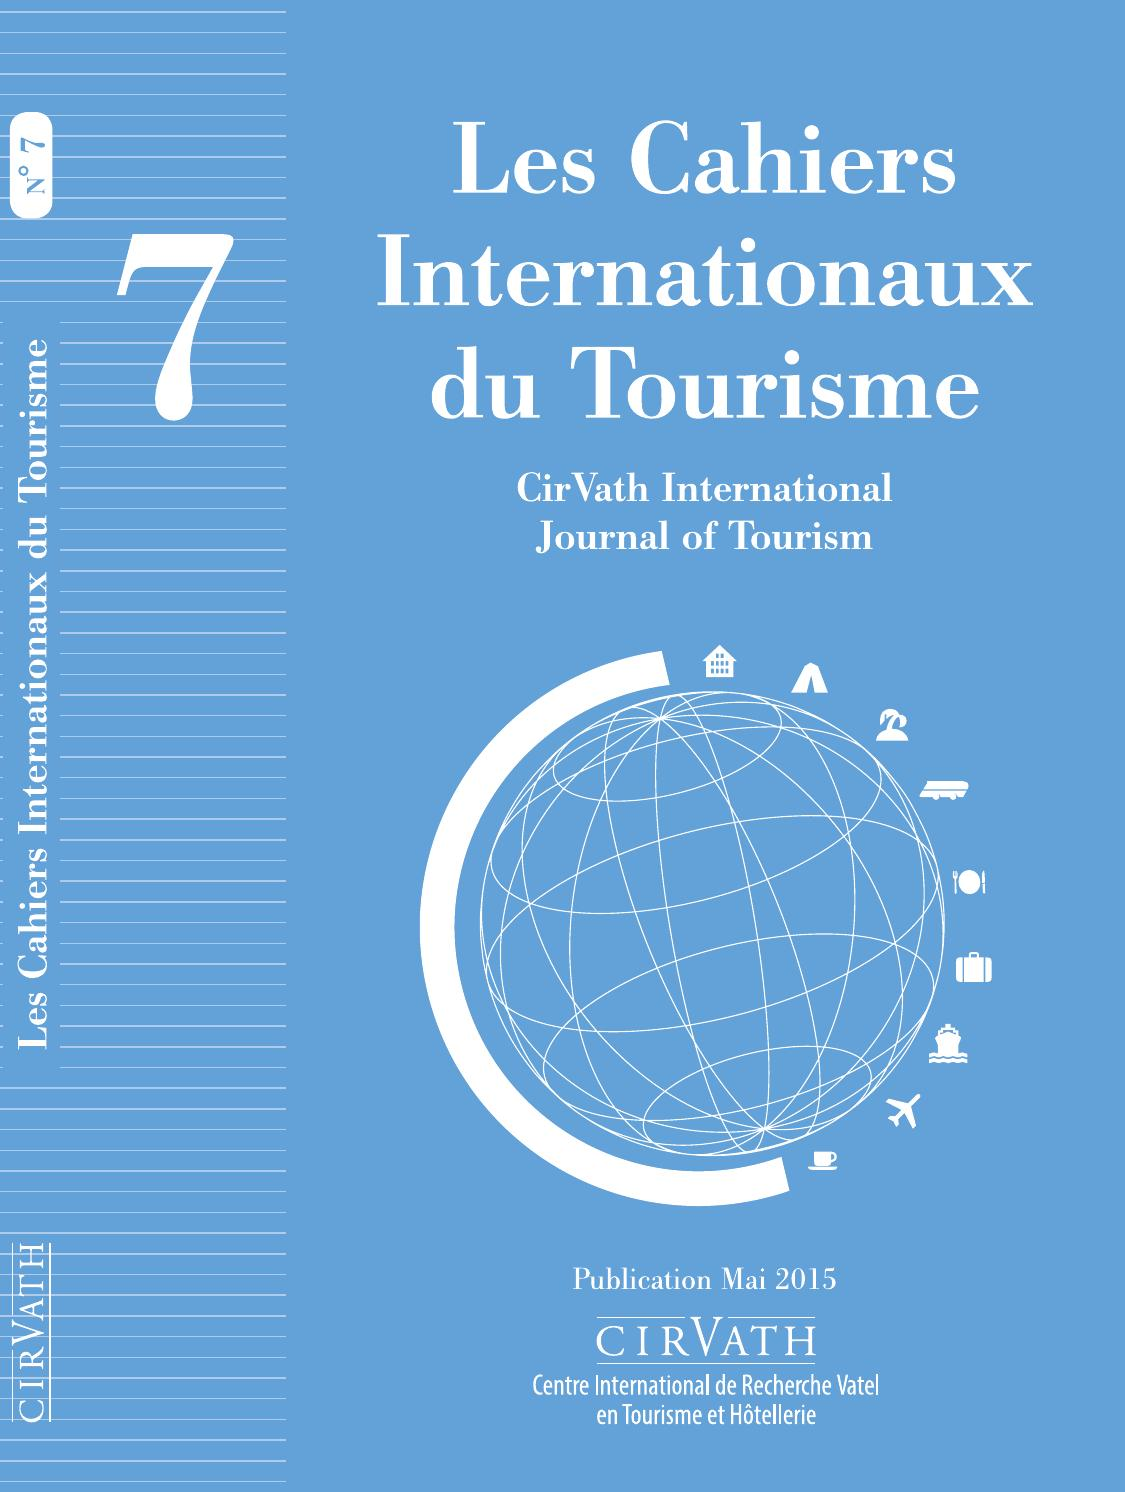 Les Cahiers Internationaux du Tourisme 7 by Vatel - issuu